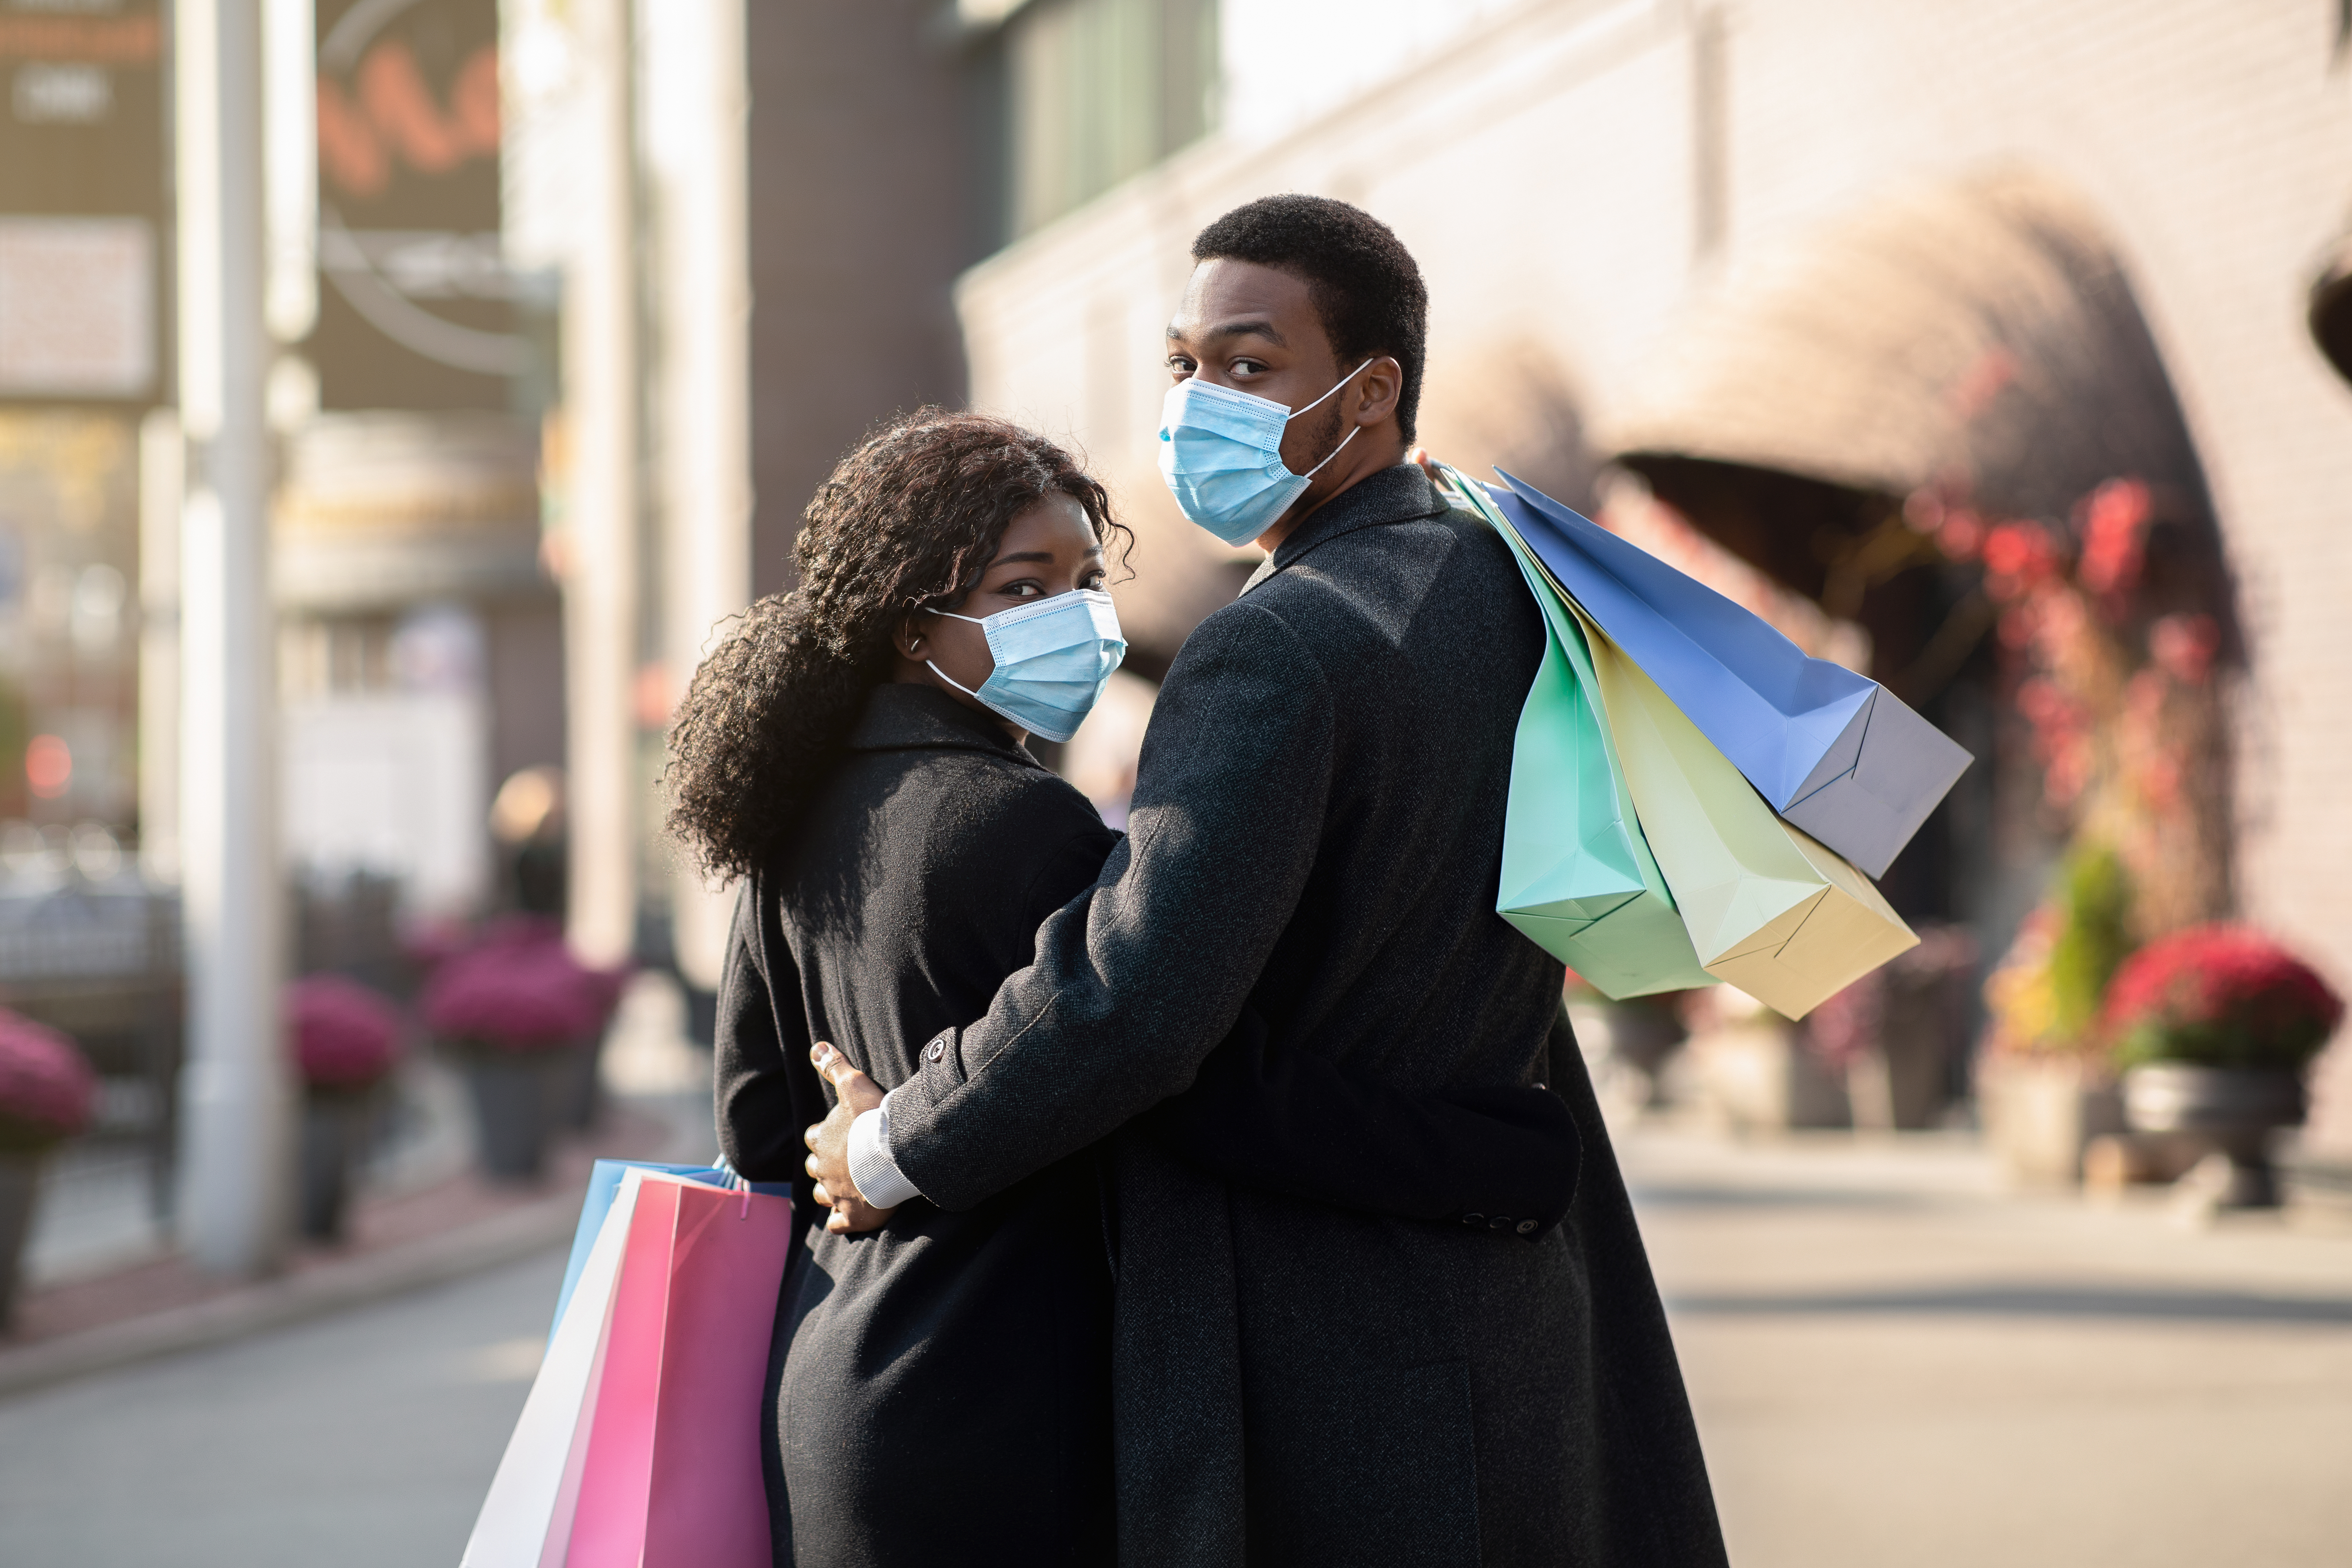 retail market research holiday shoppingmask couple